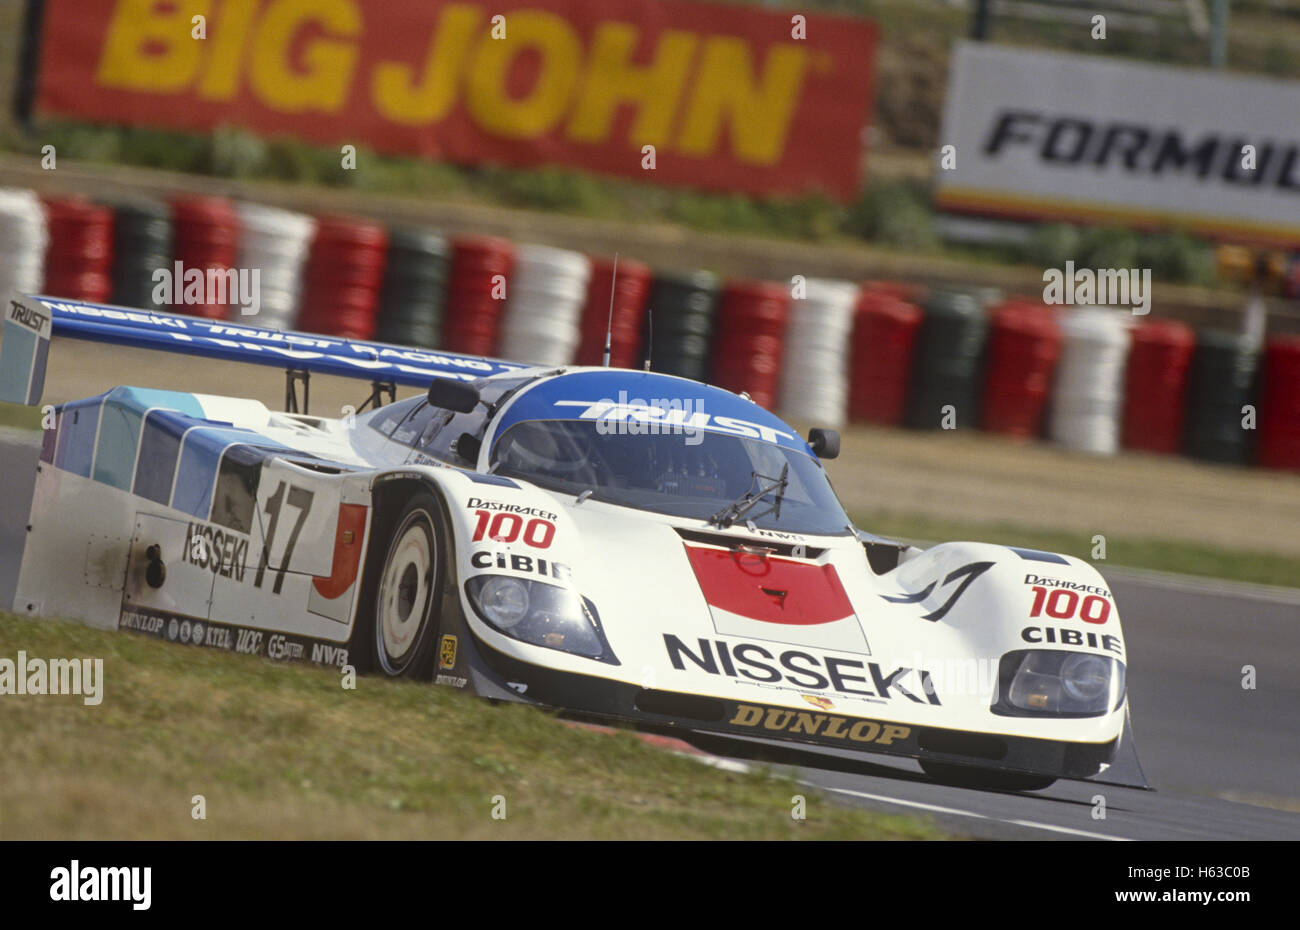 George Fouché and Steven Andskar Porsche 962 C GTi entered by Brun Motorsport Trust Racing Team1990 - Stock Image